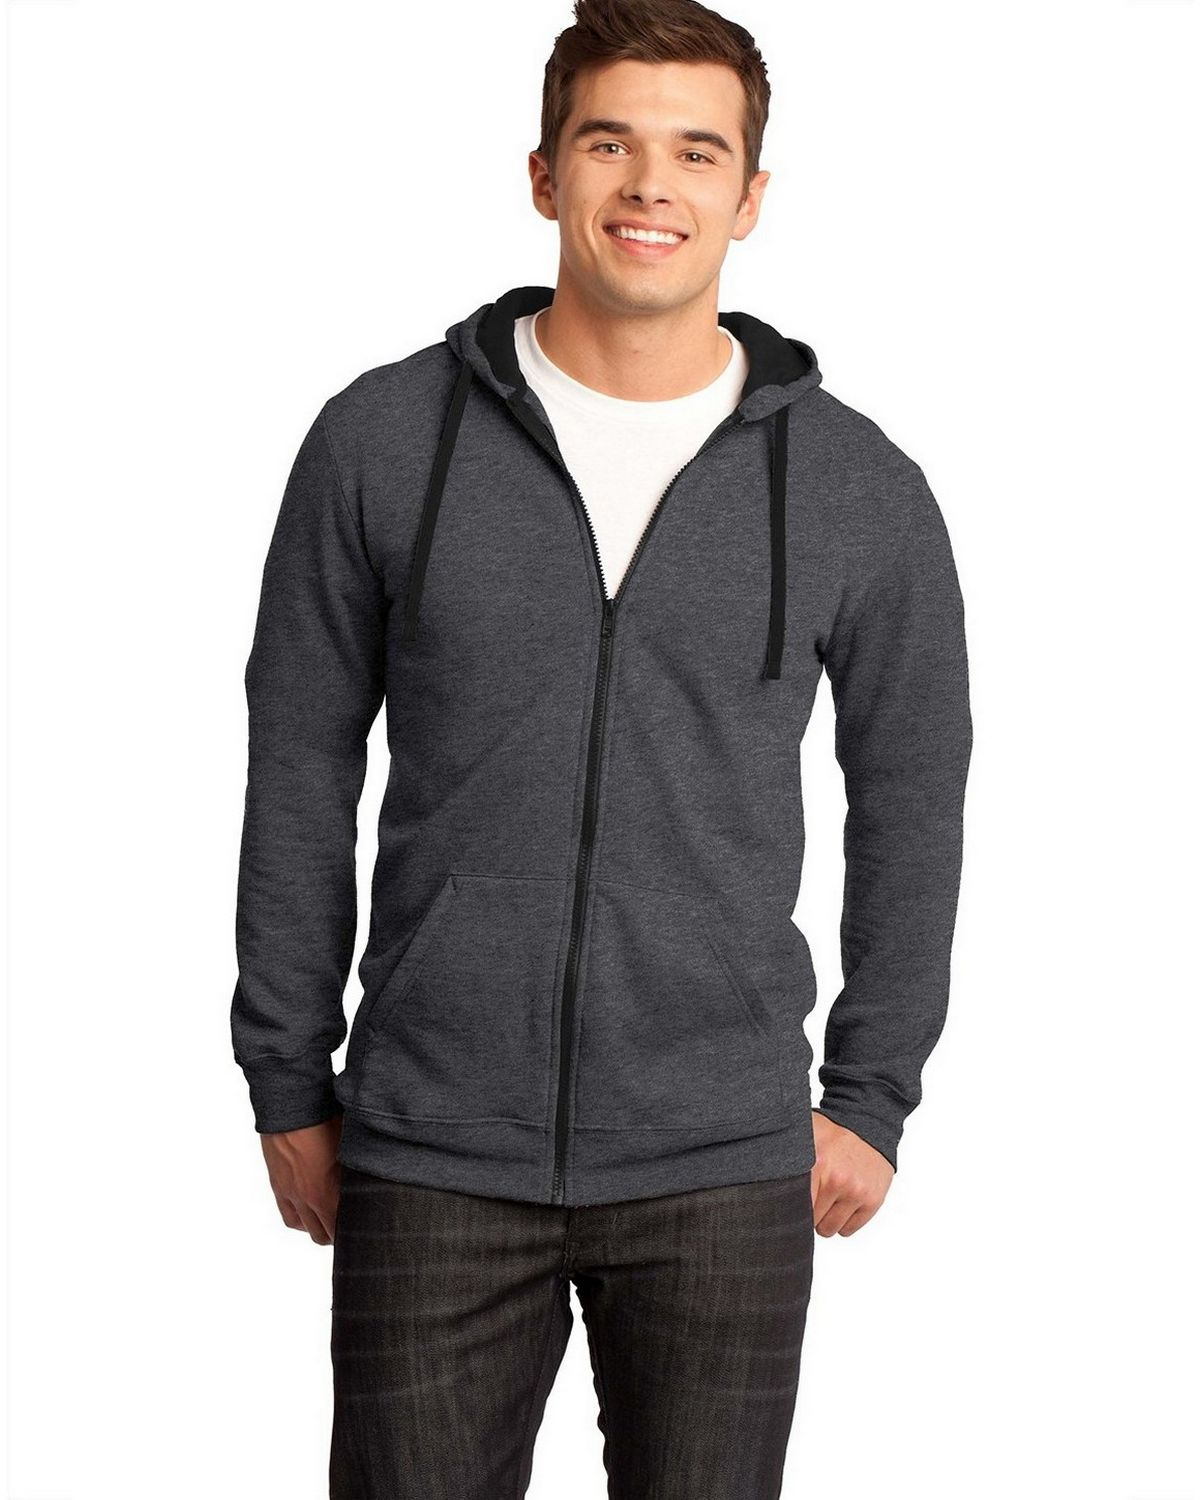 District DT800 The Concert Fleece Hoodie - Heathered Charcoal - M DT800